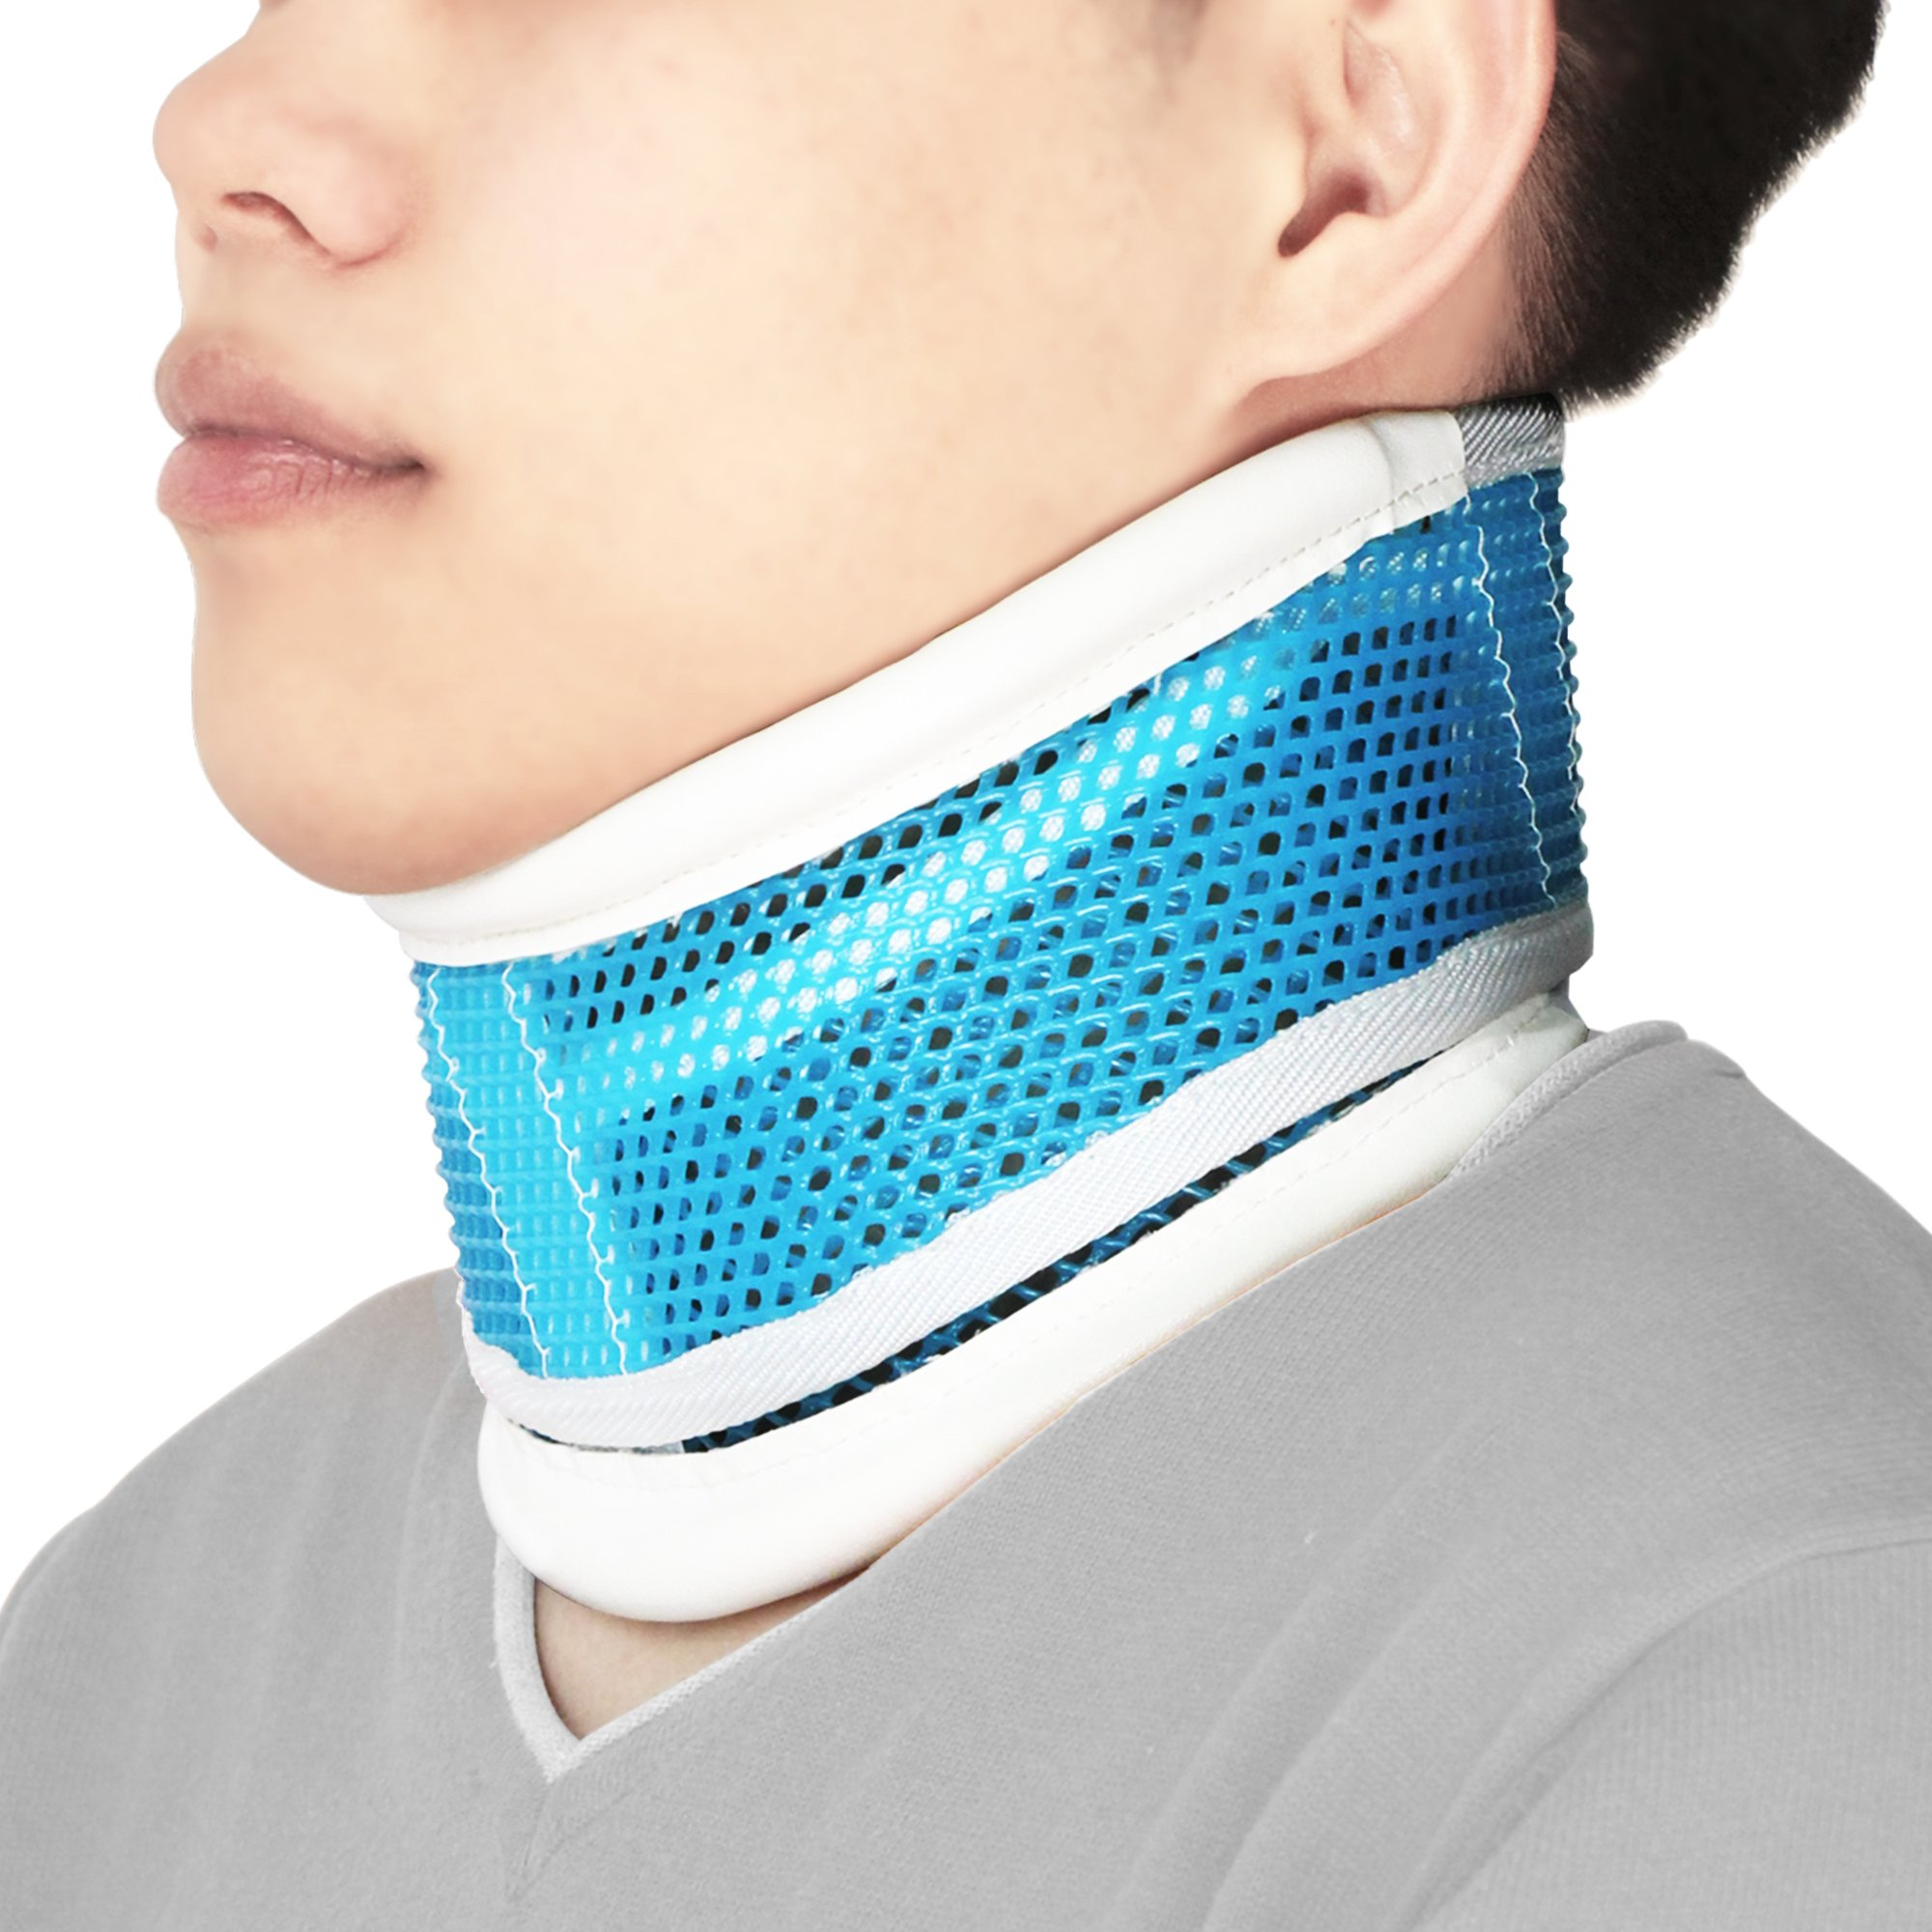 REAQER Neck Collar Cervical Traction Device Adjustable Height Neck Support Brace to Relieves Pain and Pressure in Spine(Blue)